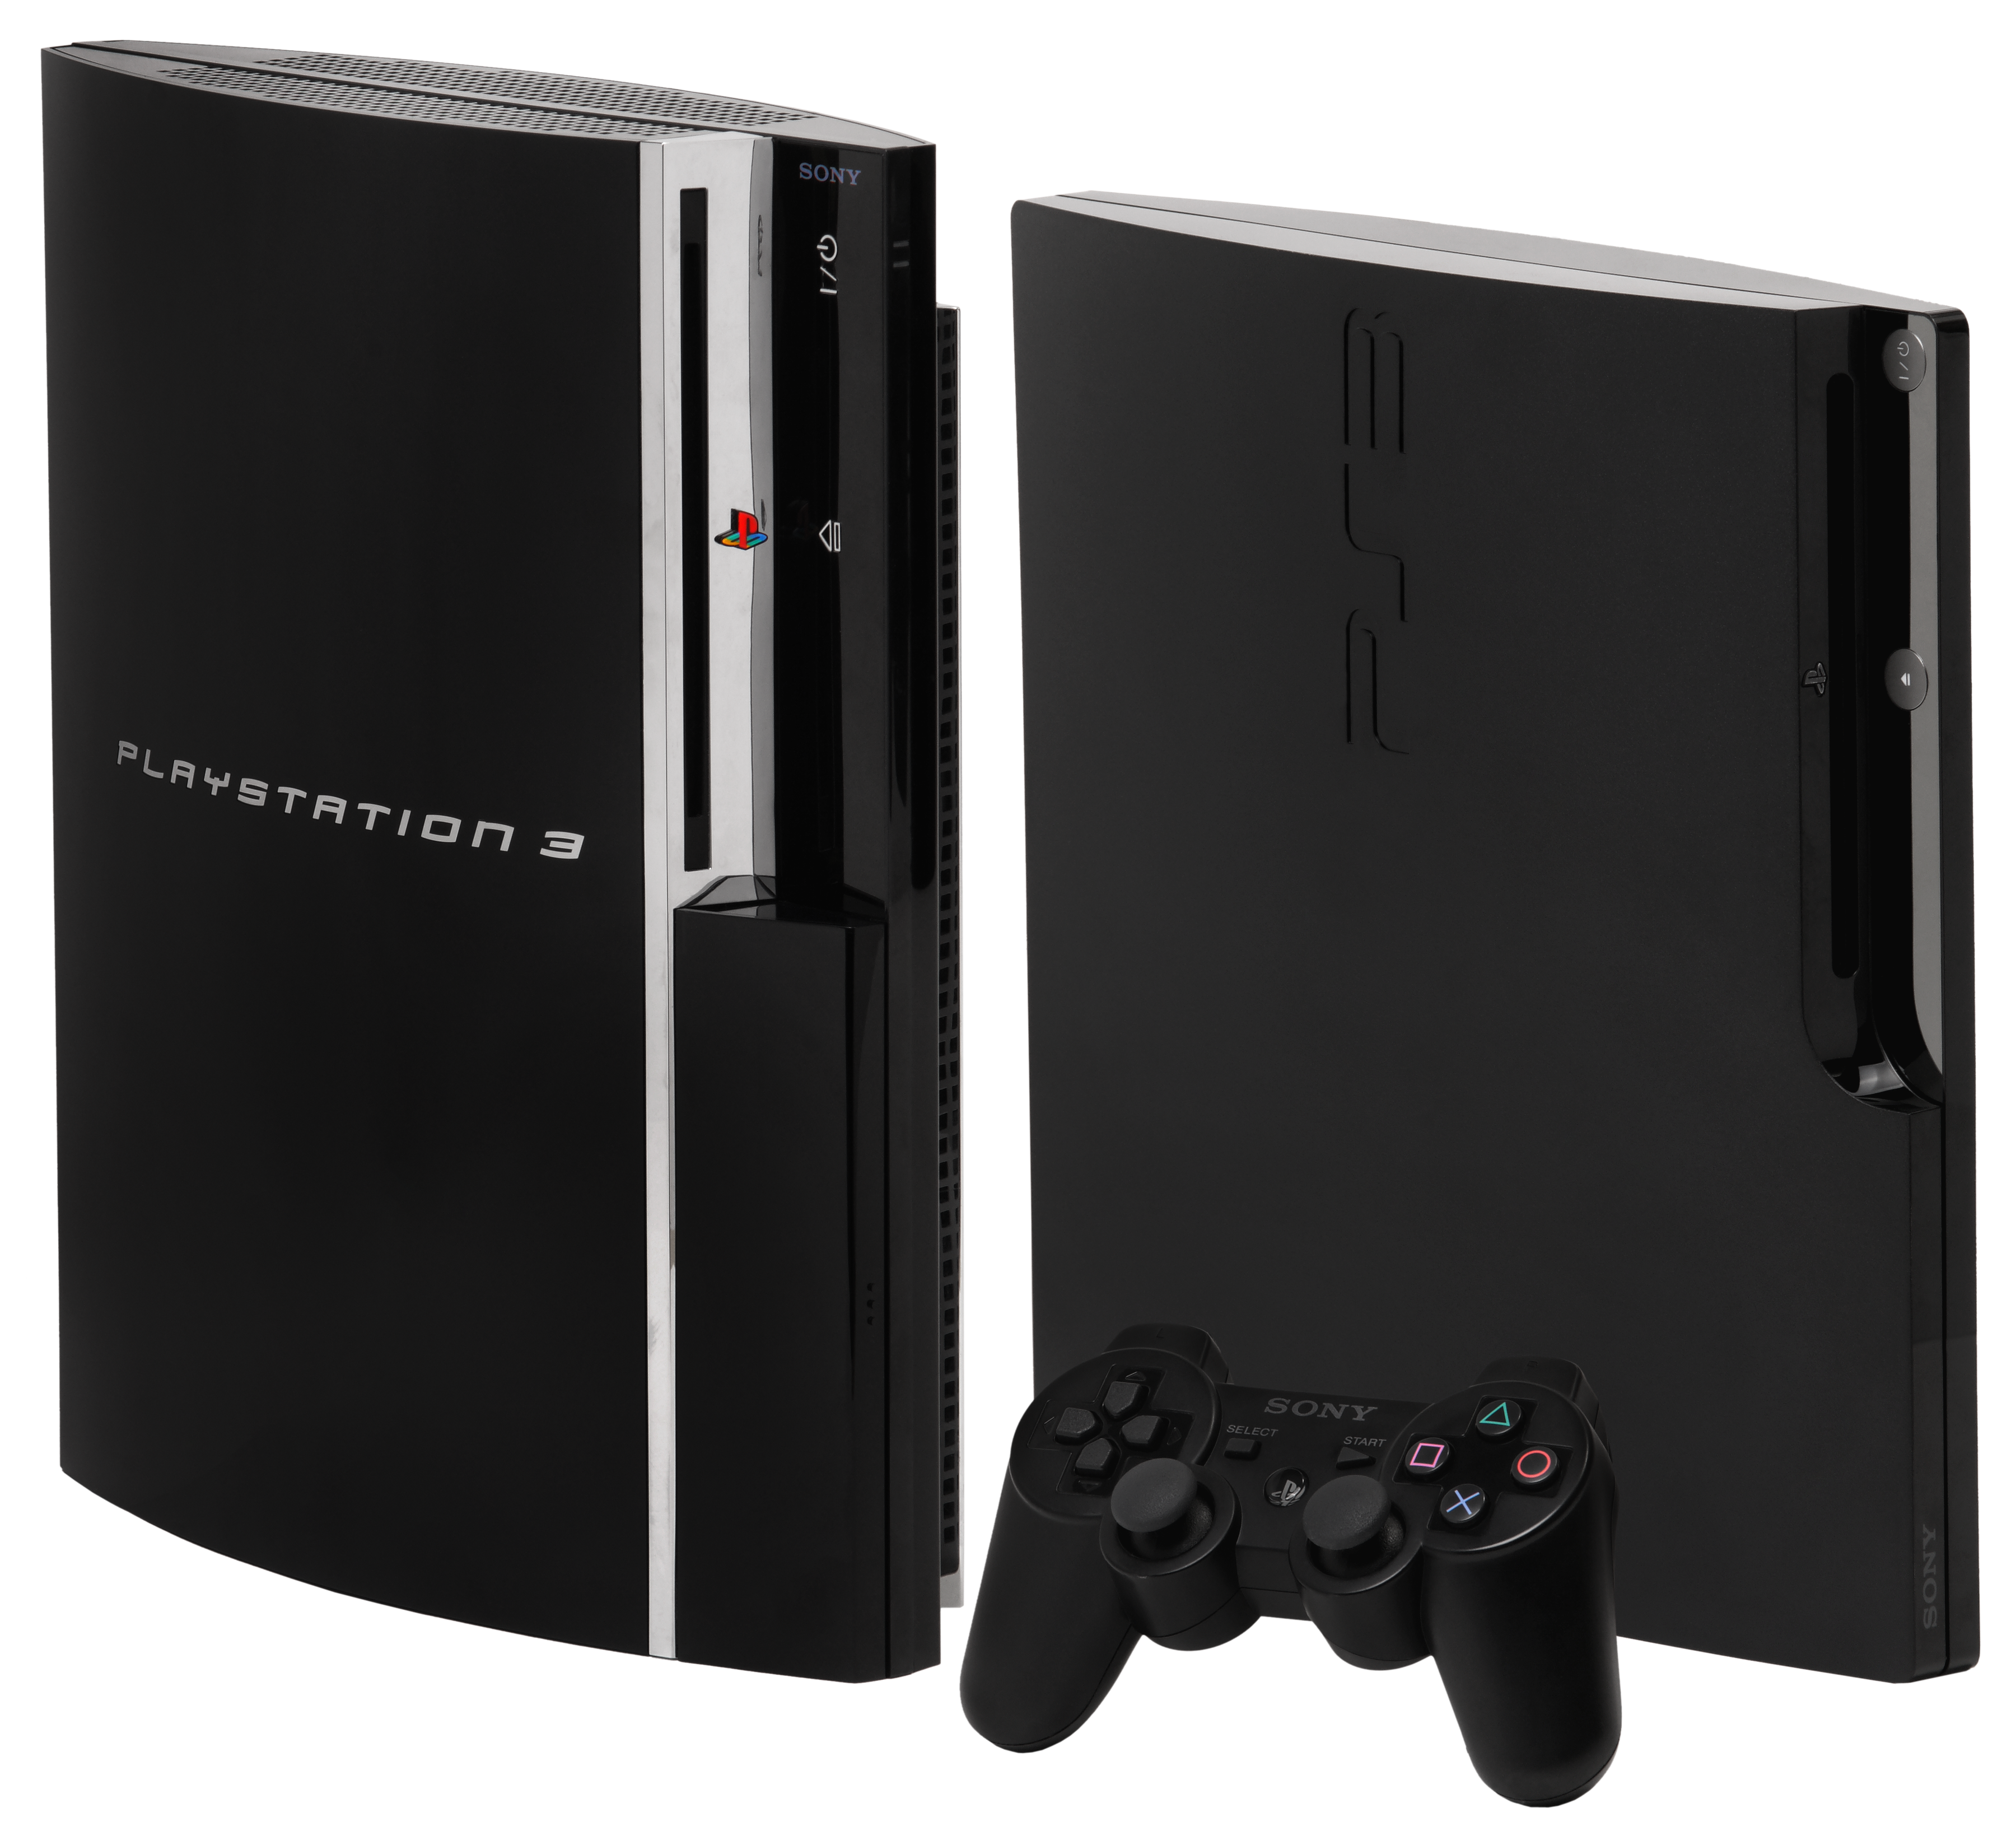 Playstation 3 png. File ps versions wikimedia